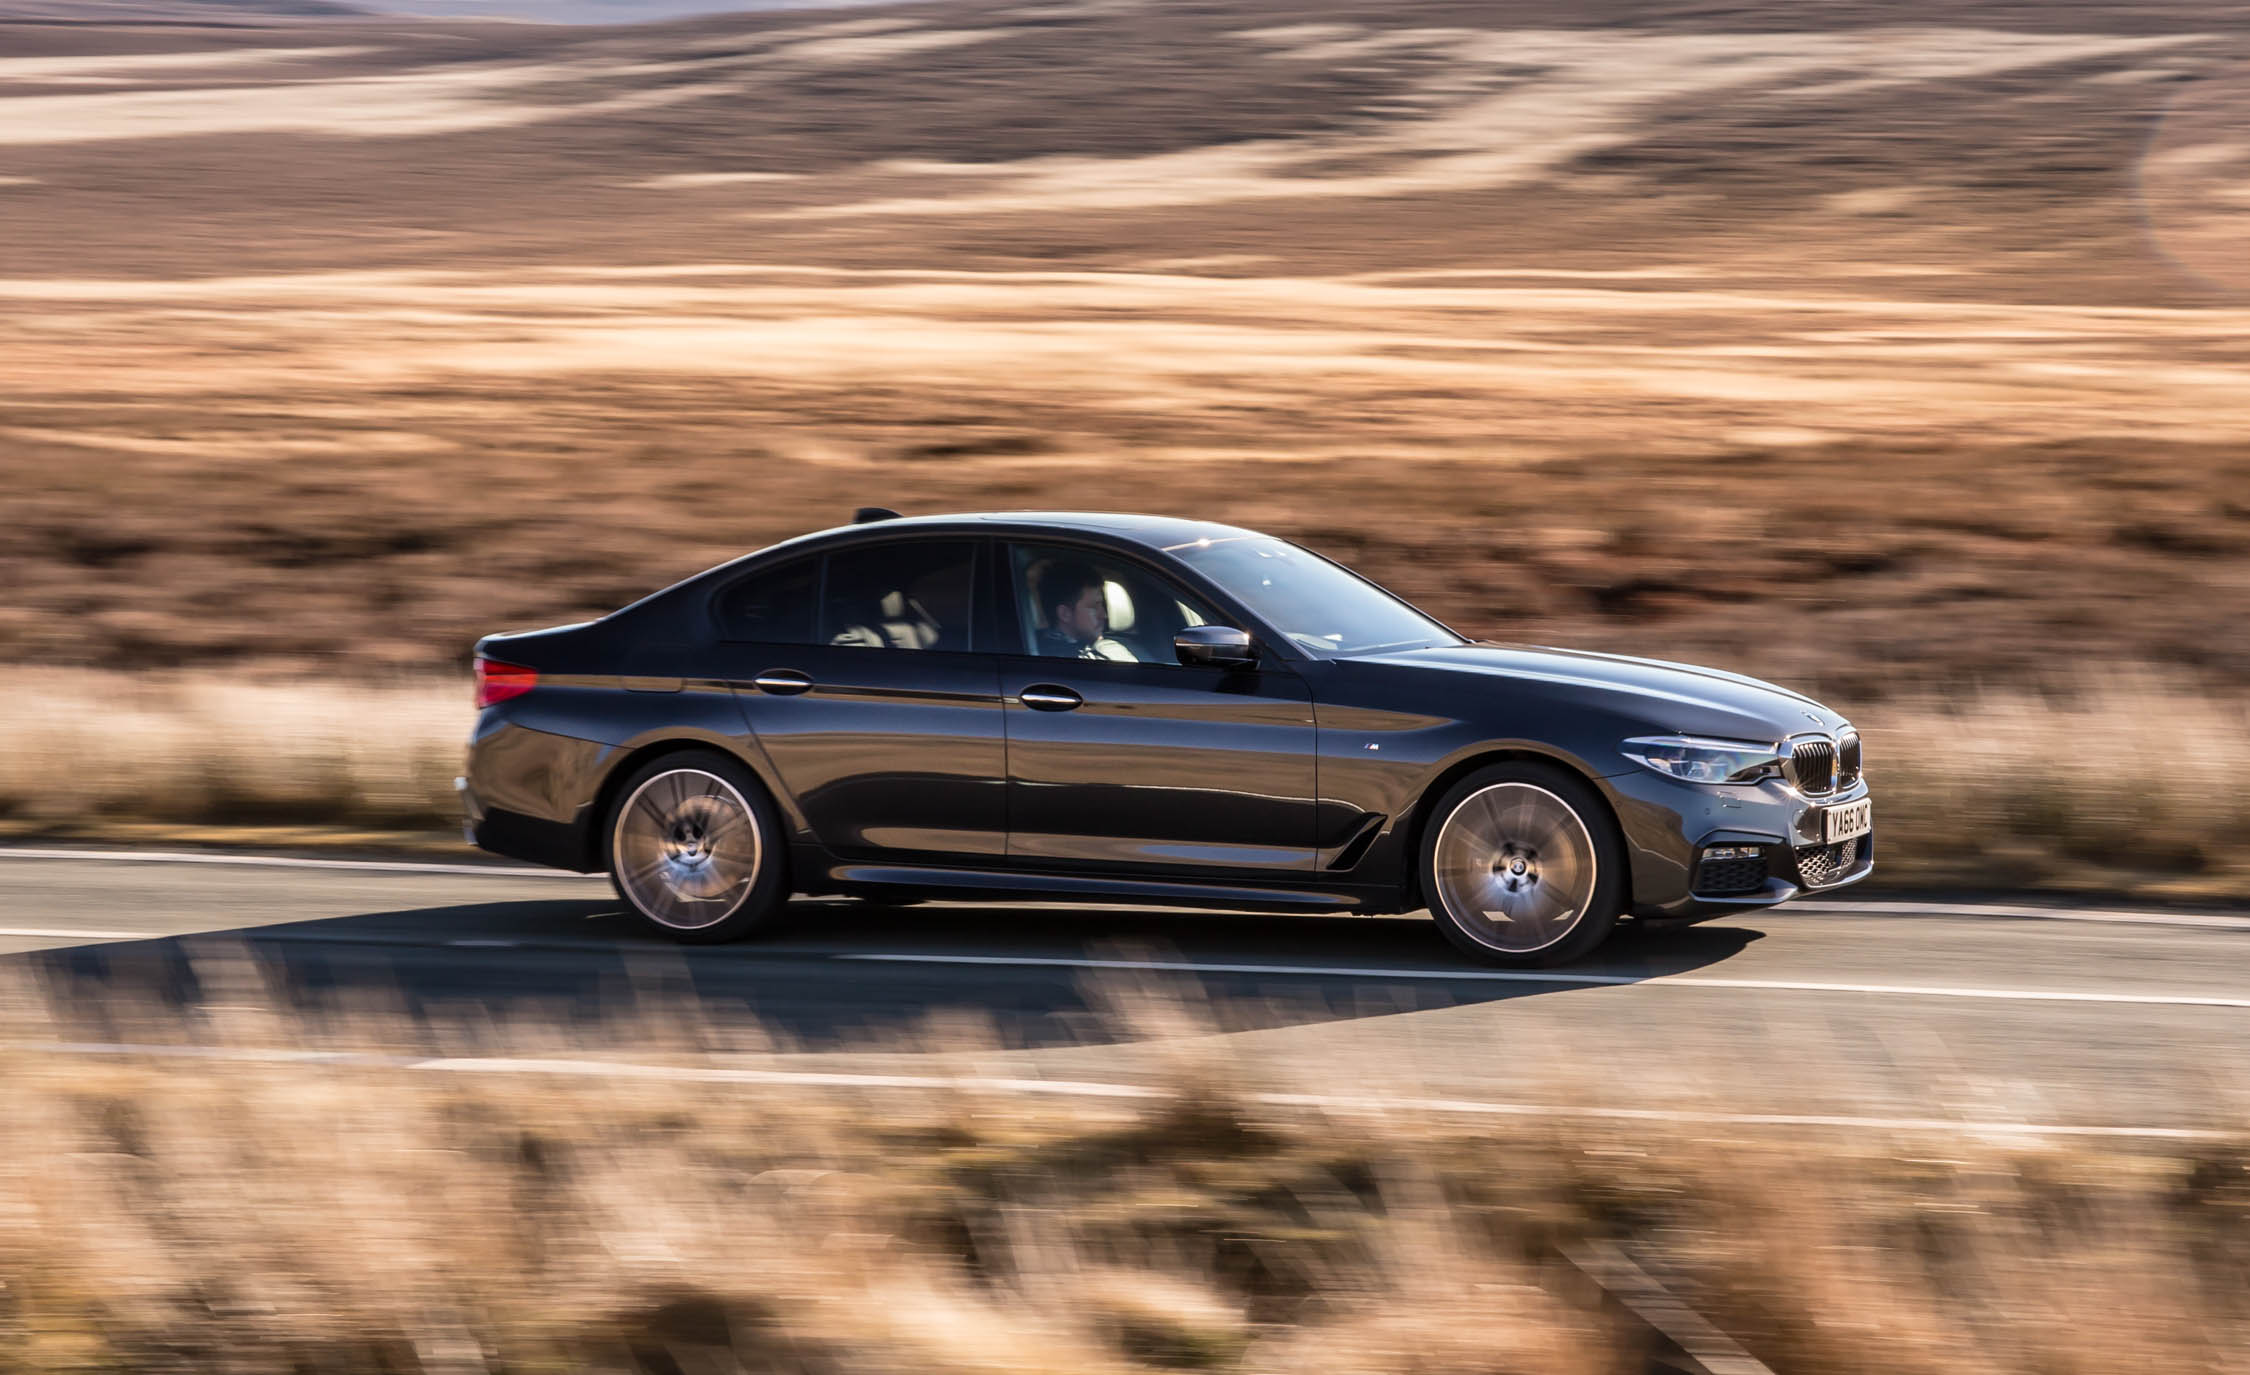 2017 BMW 530d XDrive Test Drive Side And Front View (Photo 3 of 32)